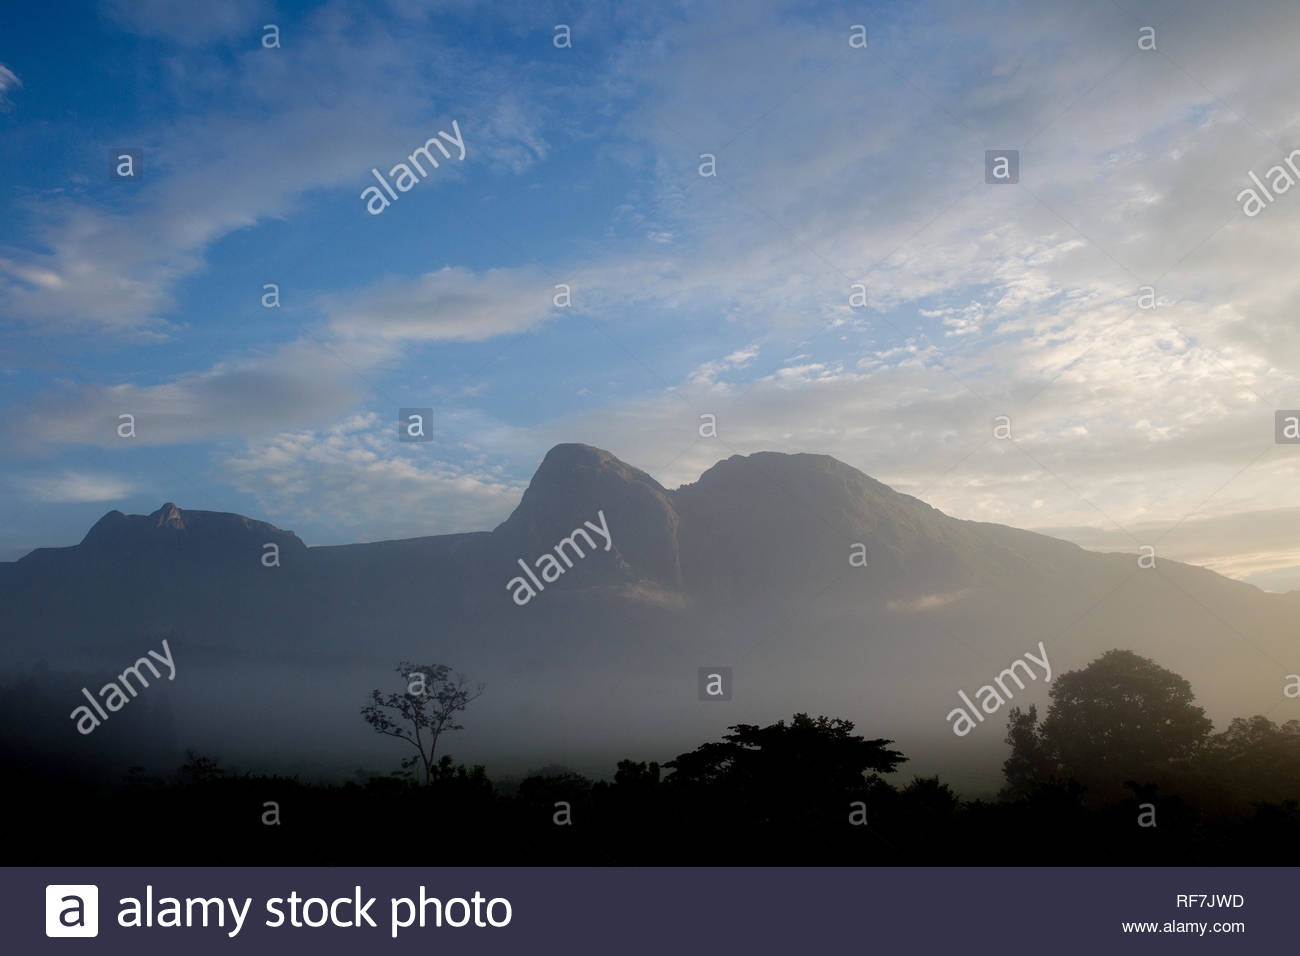 Mulanje Mountain Stock Photos Mulanje Mountain Stock Images   Alamy 1300x956